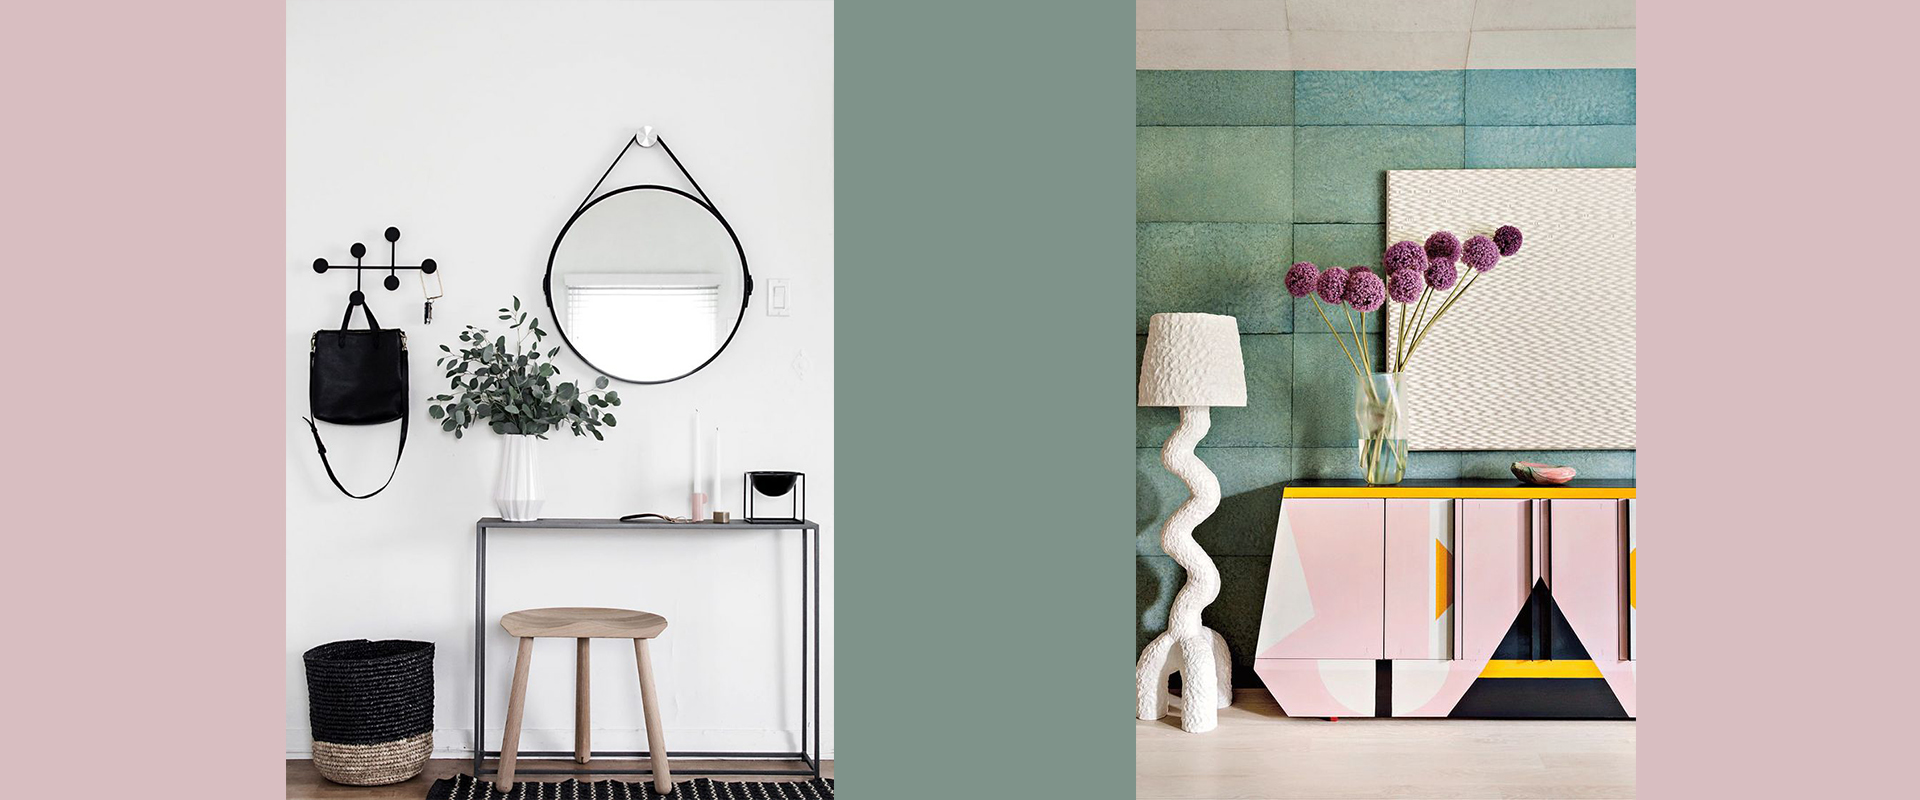 bconnected-blog-How to design a welcoming entrance hall